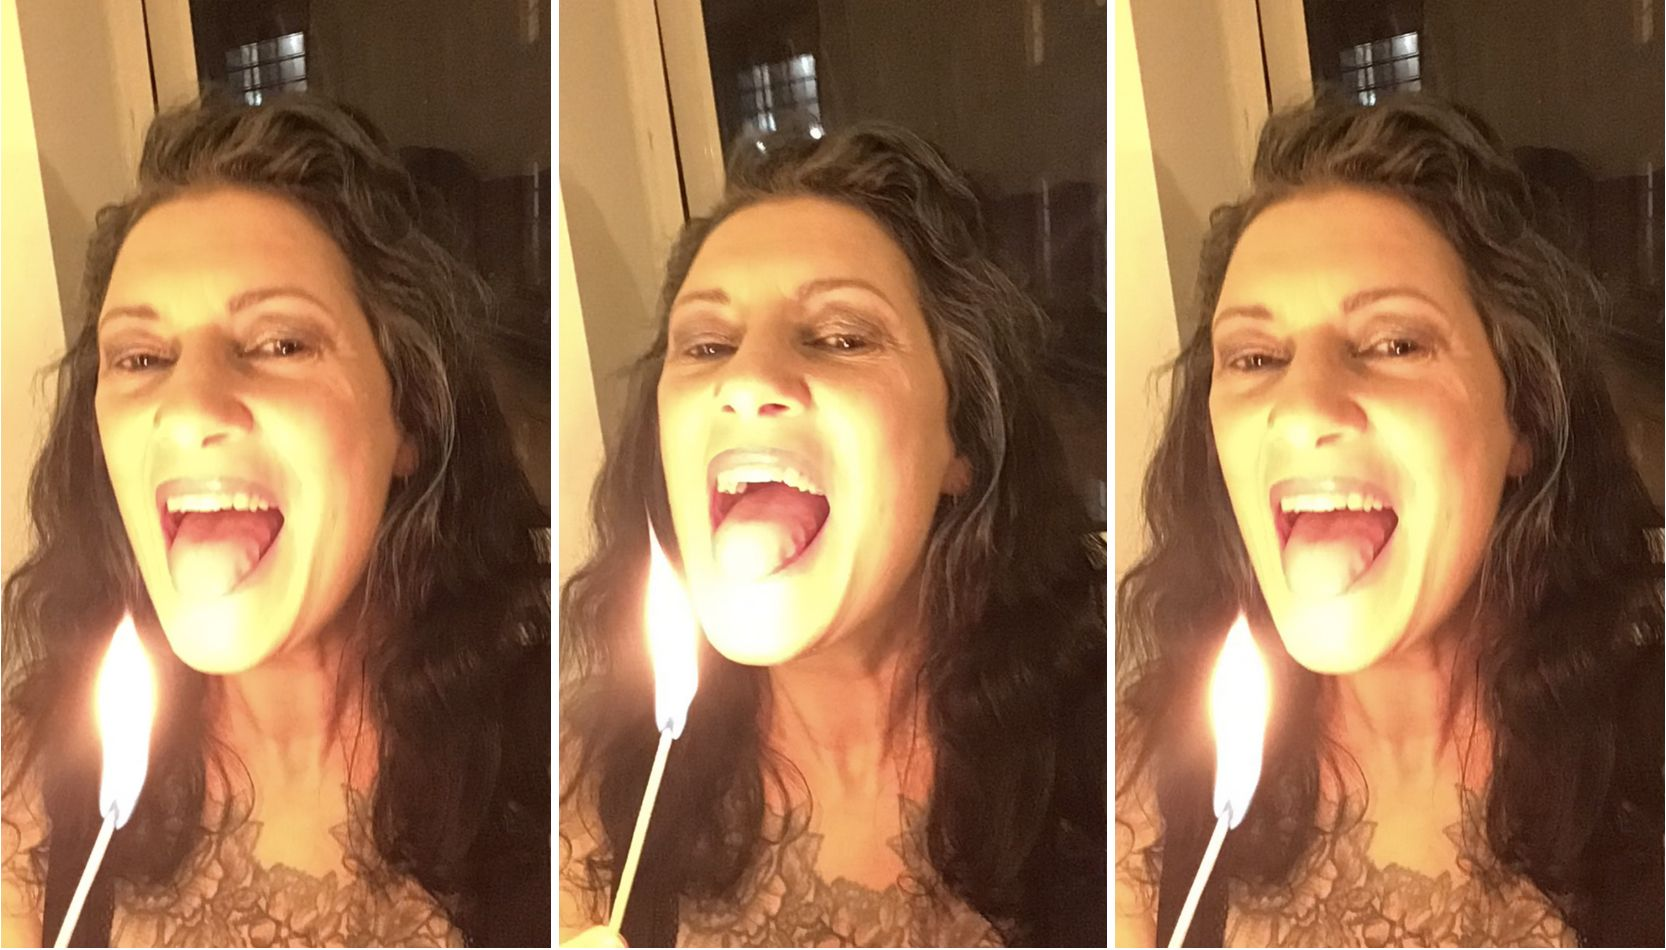 a composite triptych of three images of Jet, a femme person with black hair holding a flae to their mouth.